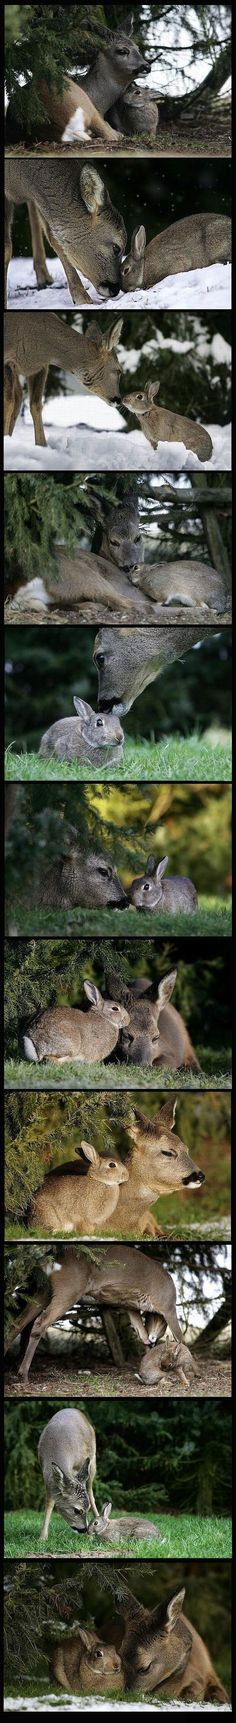 I love me some unlikely animal friends